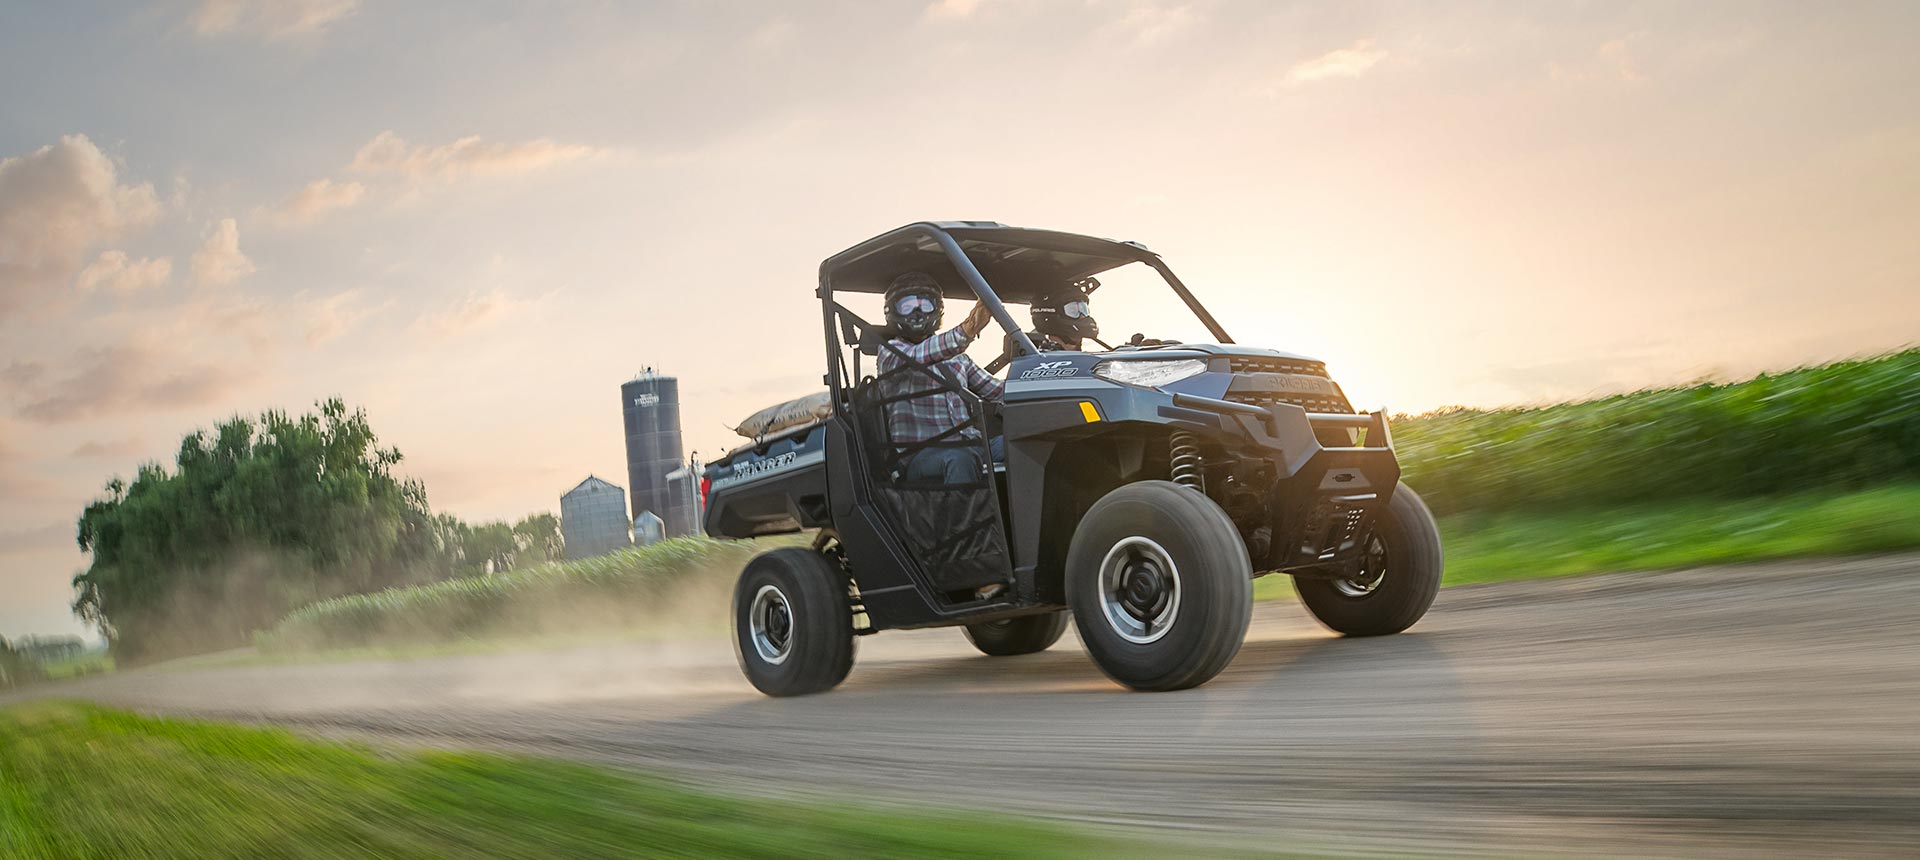 2019 Polaris Ranger XP 1000 EPS in Claysville, Pennsylvania